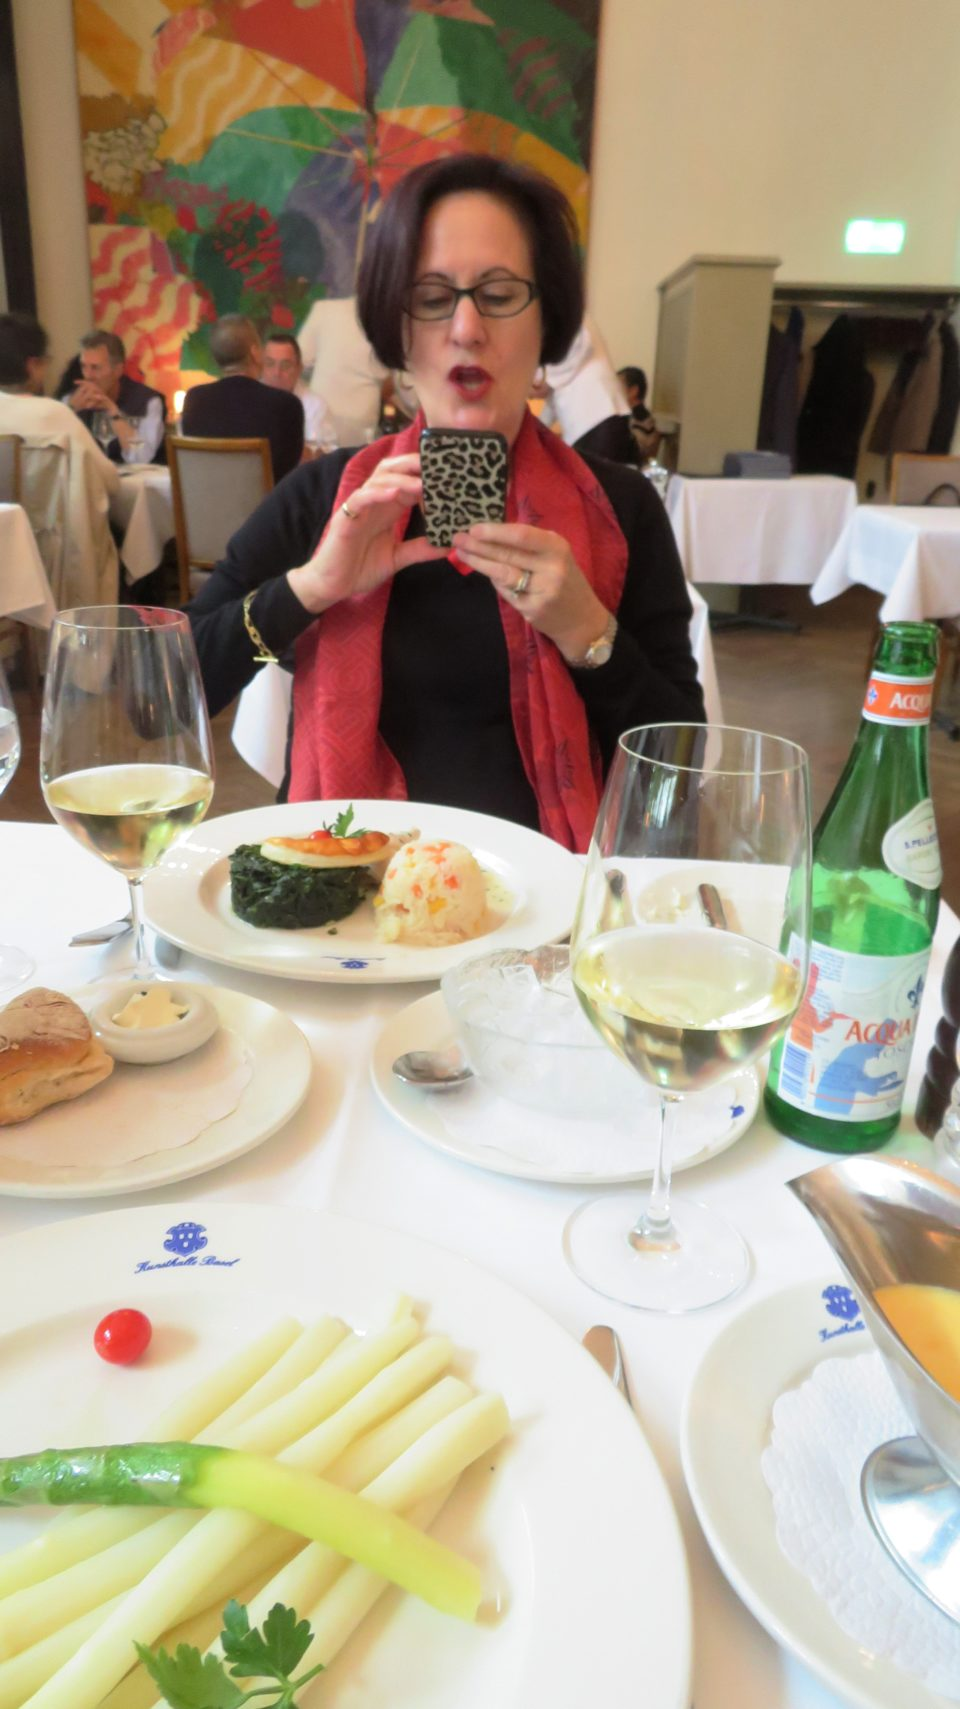 Lynn having a great time at the KunstHalle Restaurant in Basel, Switzerland